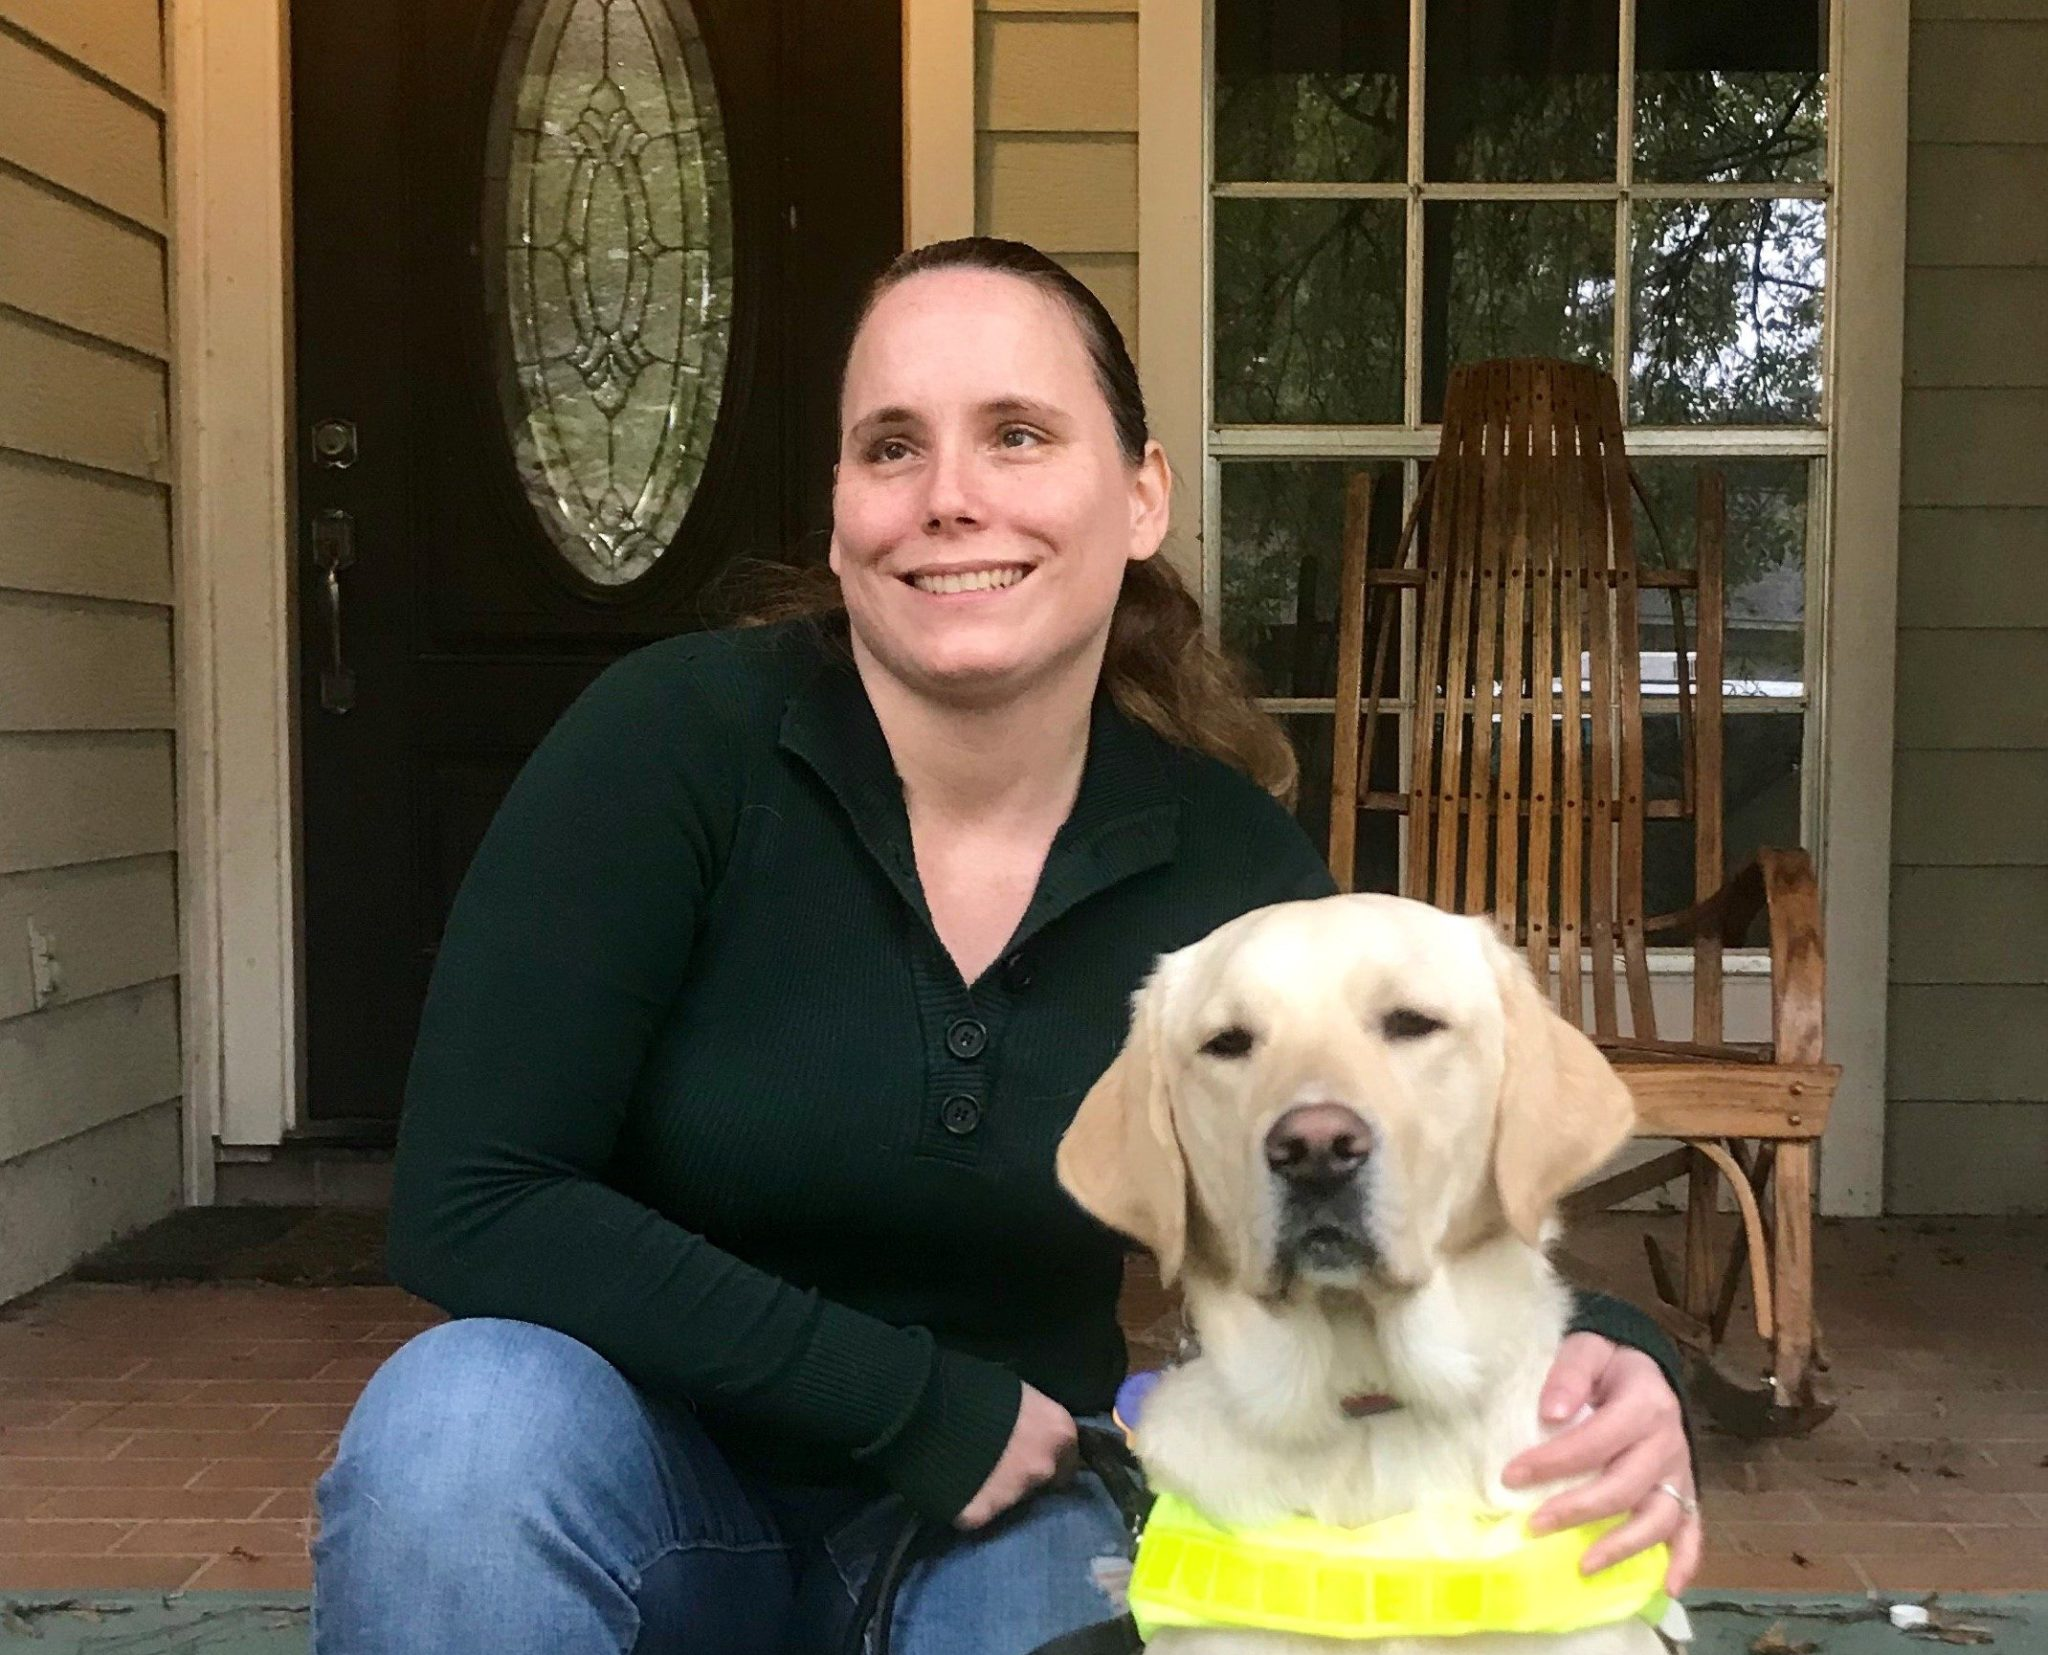 Image shows Guide Dog Owner Amanda sitting on the porch with her arm around her guide dog. Guide Dog Bell is a beautiful yellow lab. She's wearing her guide dog harness and is looking into the camera.